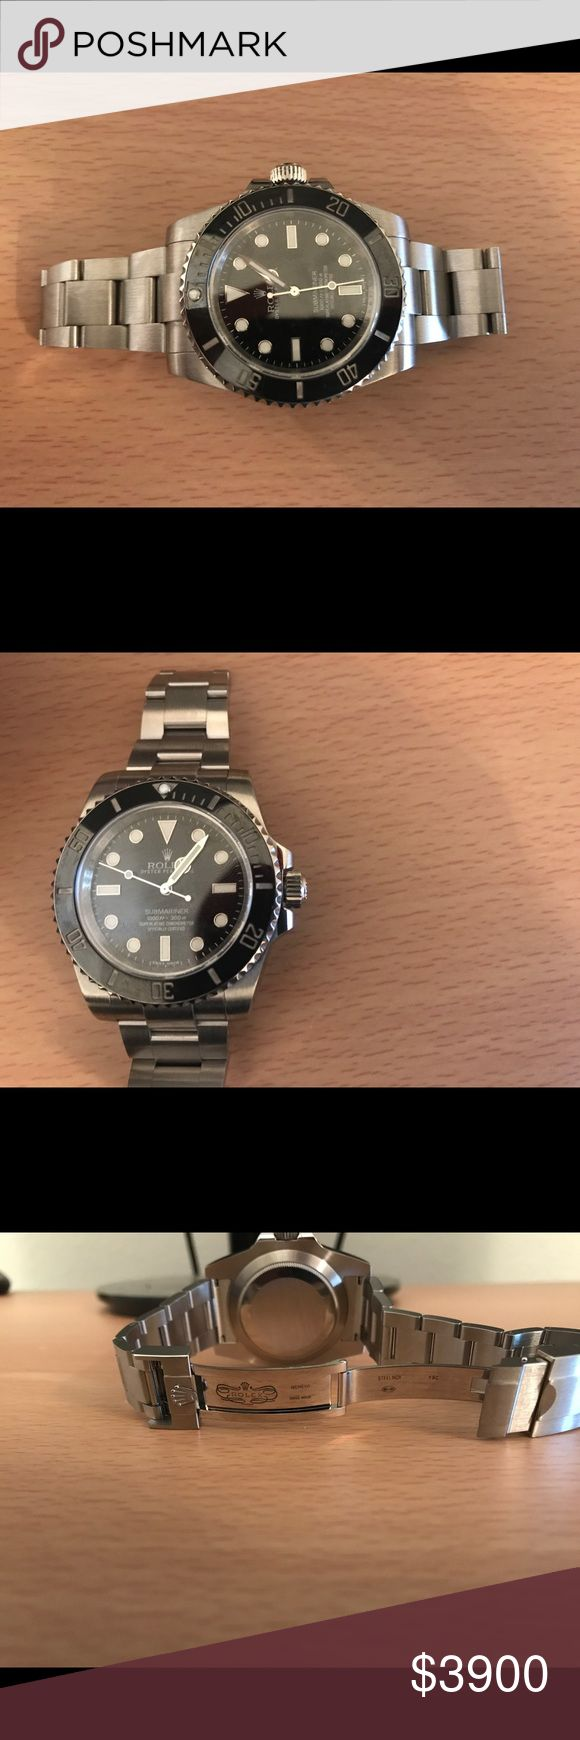 Rolex Submariner 114060 No Date In Good Condition Rolex 114060 Submariner stainless steel and authentic. Check the photos. 9.5/10 condition. Only worn for special occasions. I have not worn it in months and I am looking for a loving owner of this prestige watch Rolex Accessories Watches